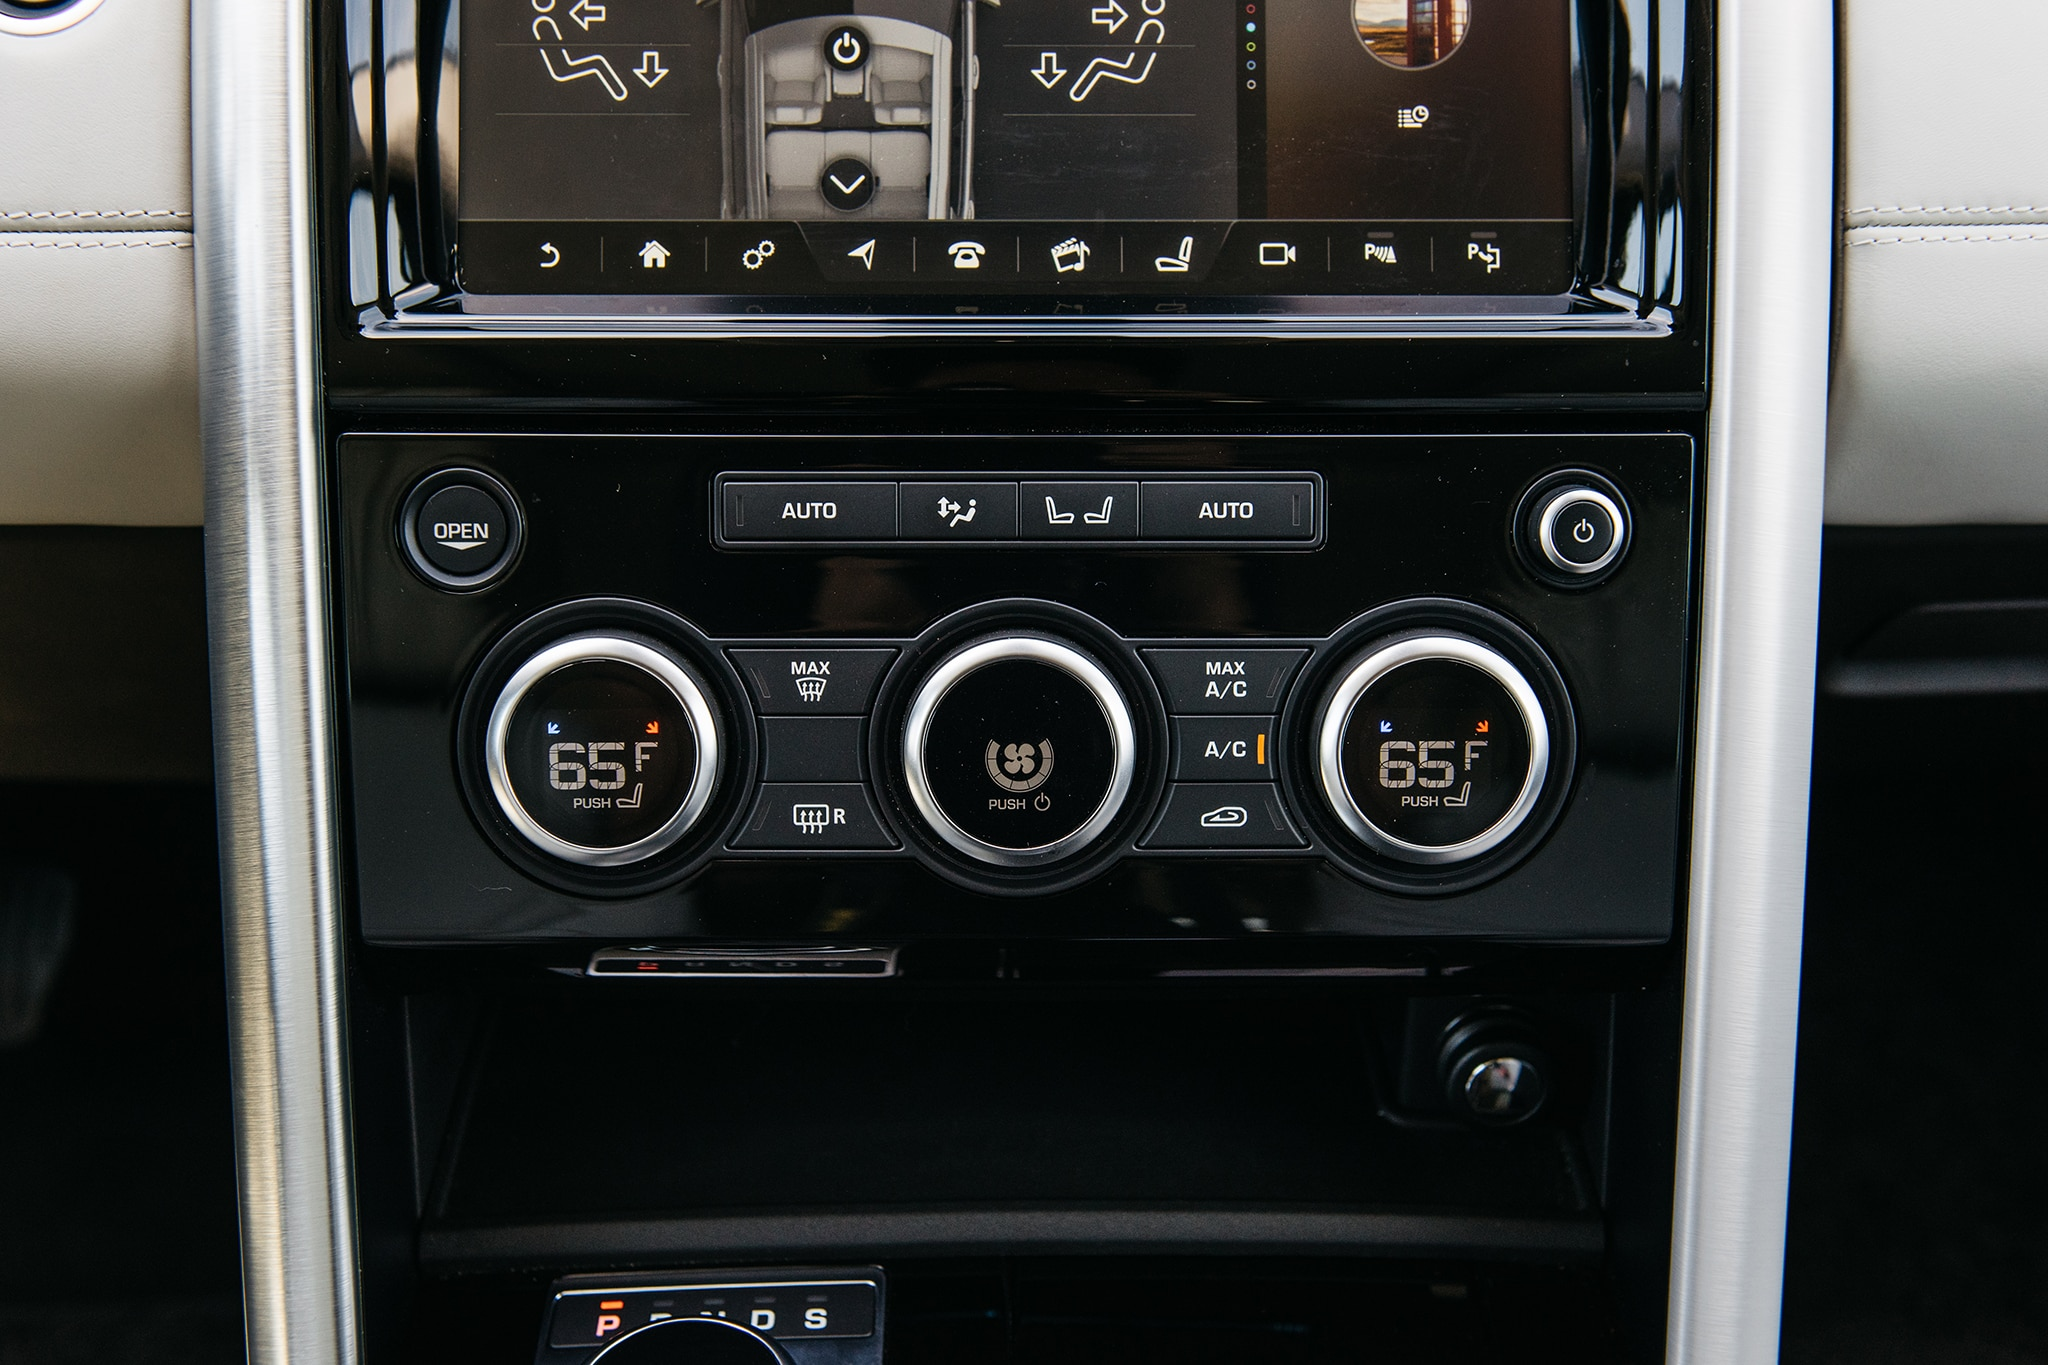 2017 Land Rover Discovery Td6 HSE Climate Control